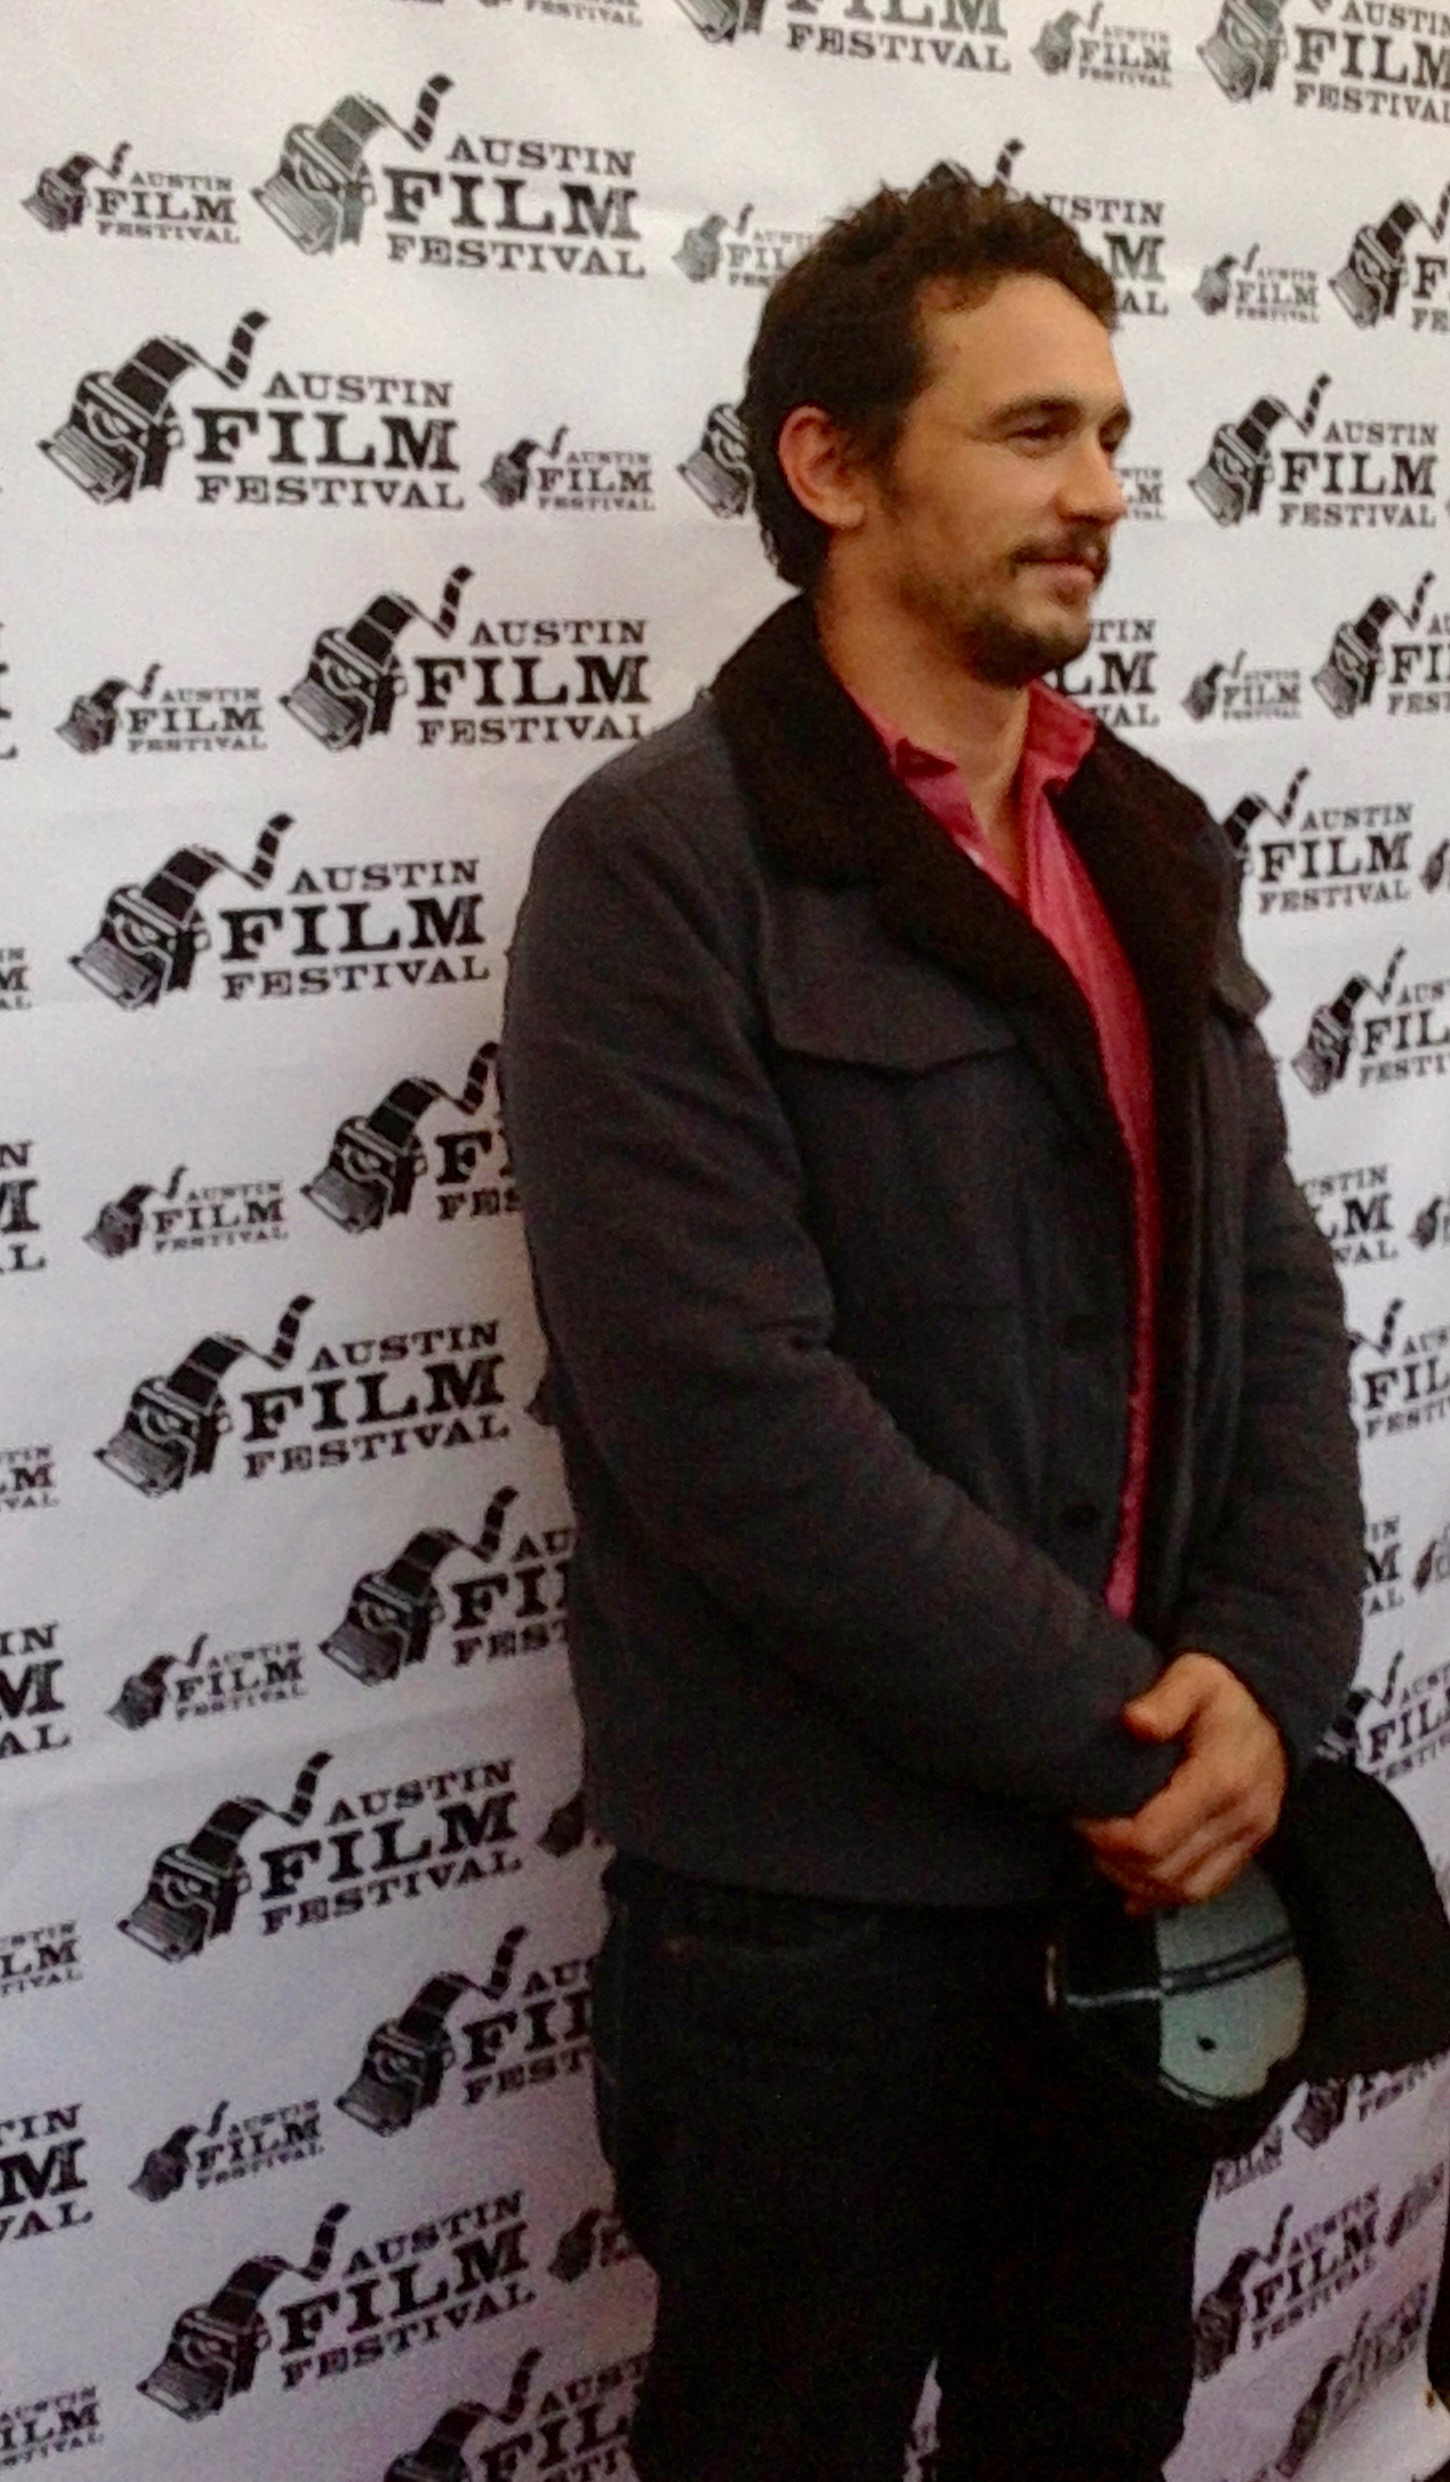 James Franco at Austin Film Fest